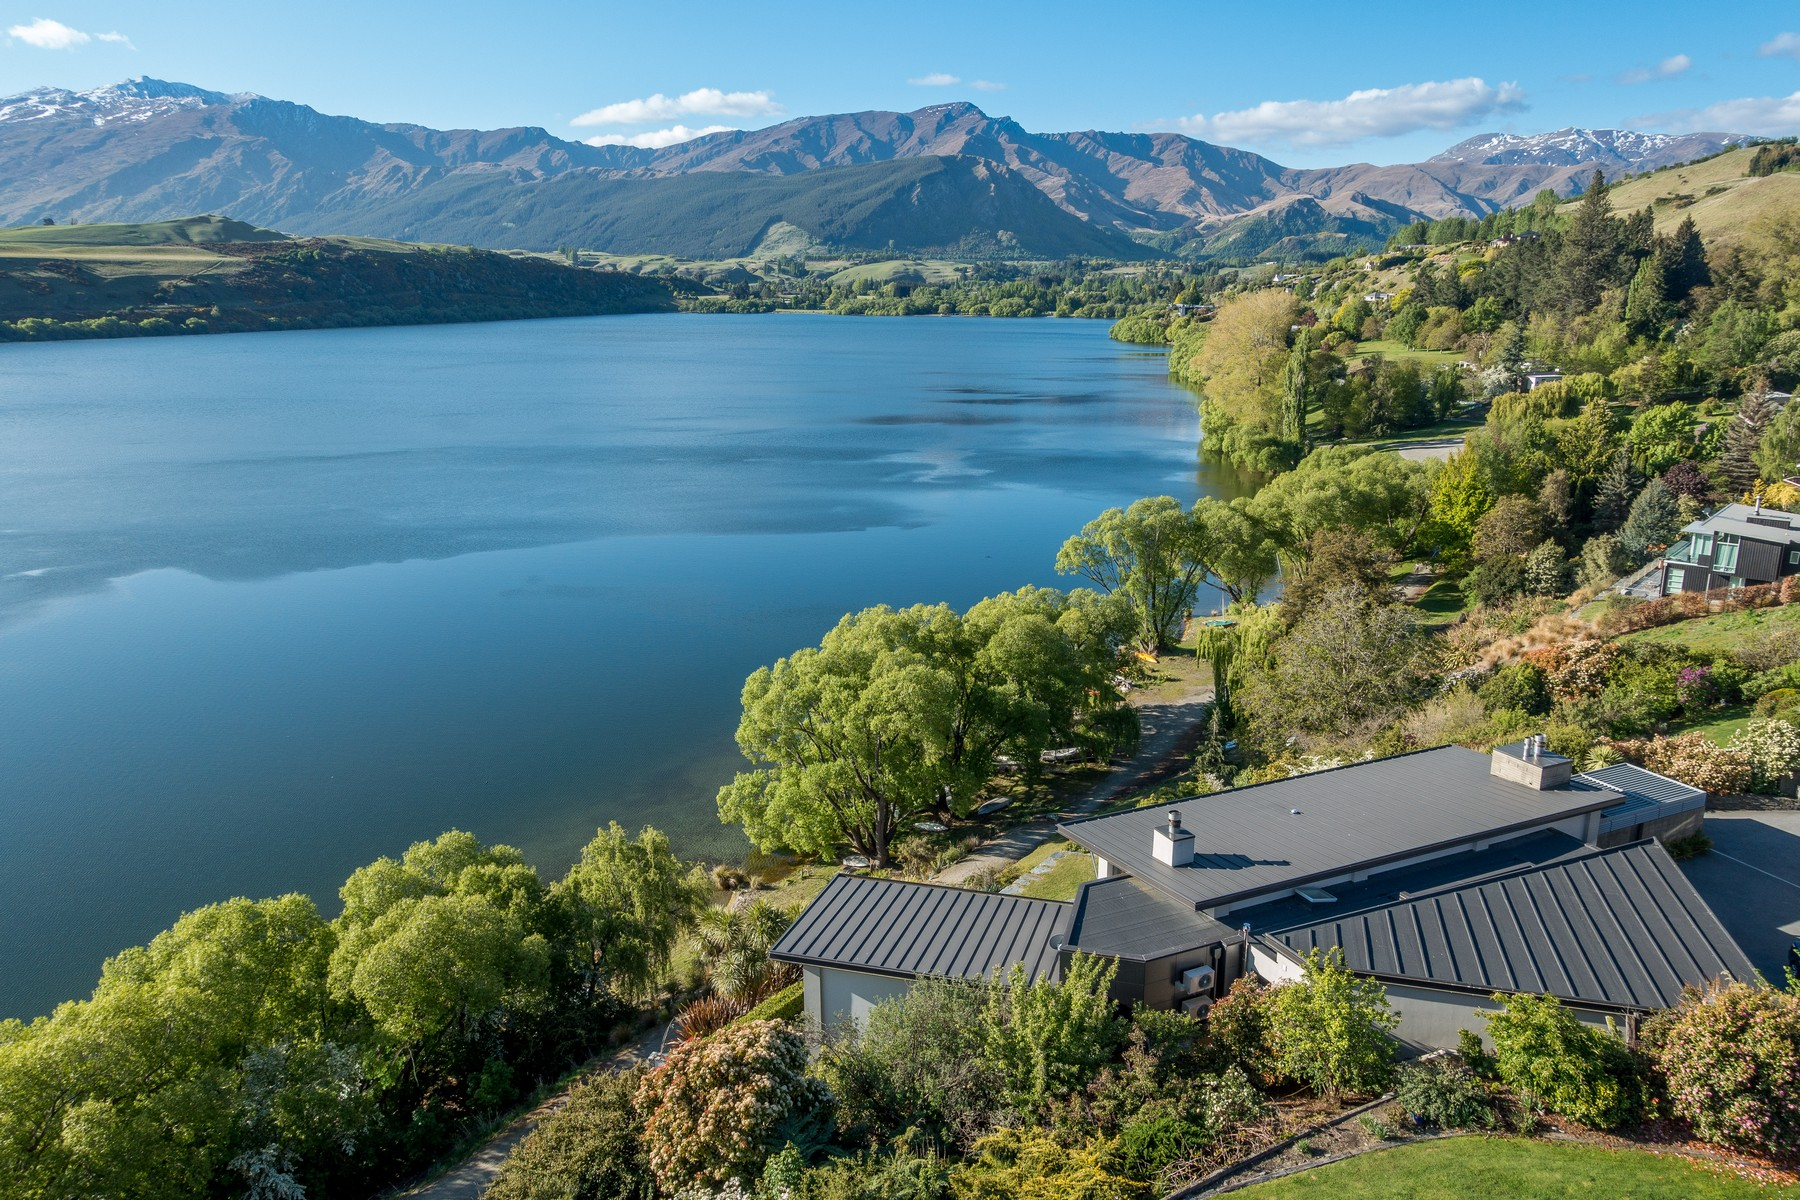 Property For Sale at 37 Lake Hayes Road, Lake Hayes, Queenstown